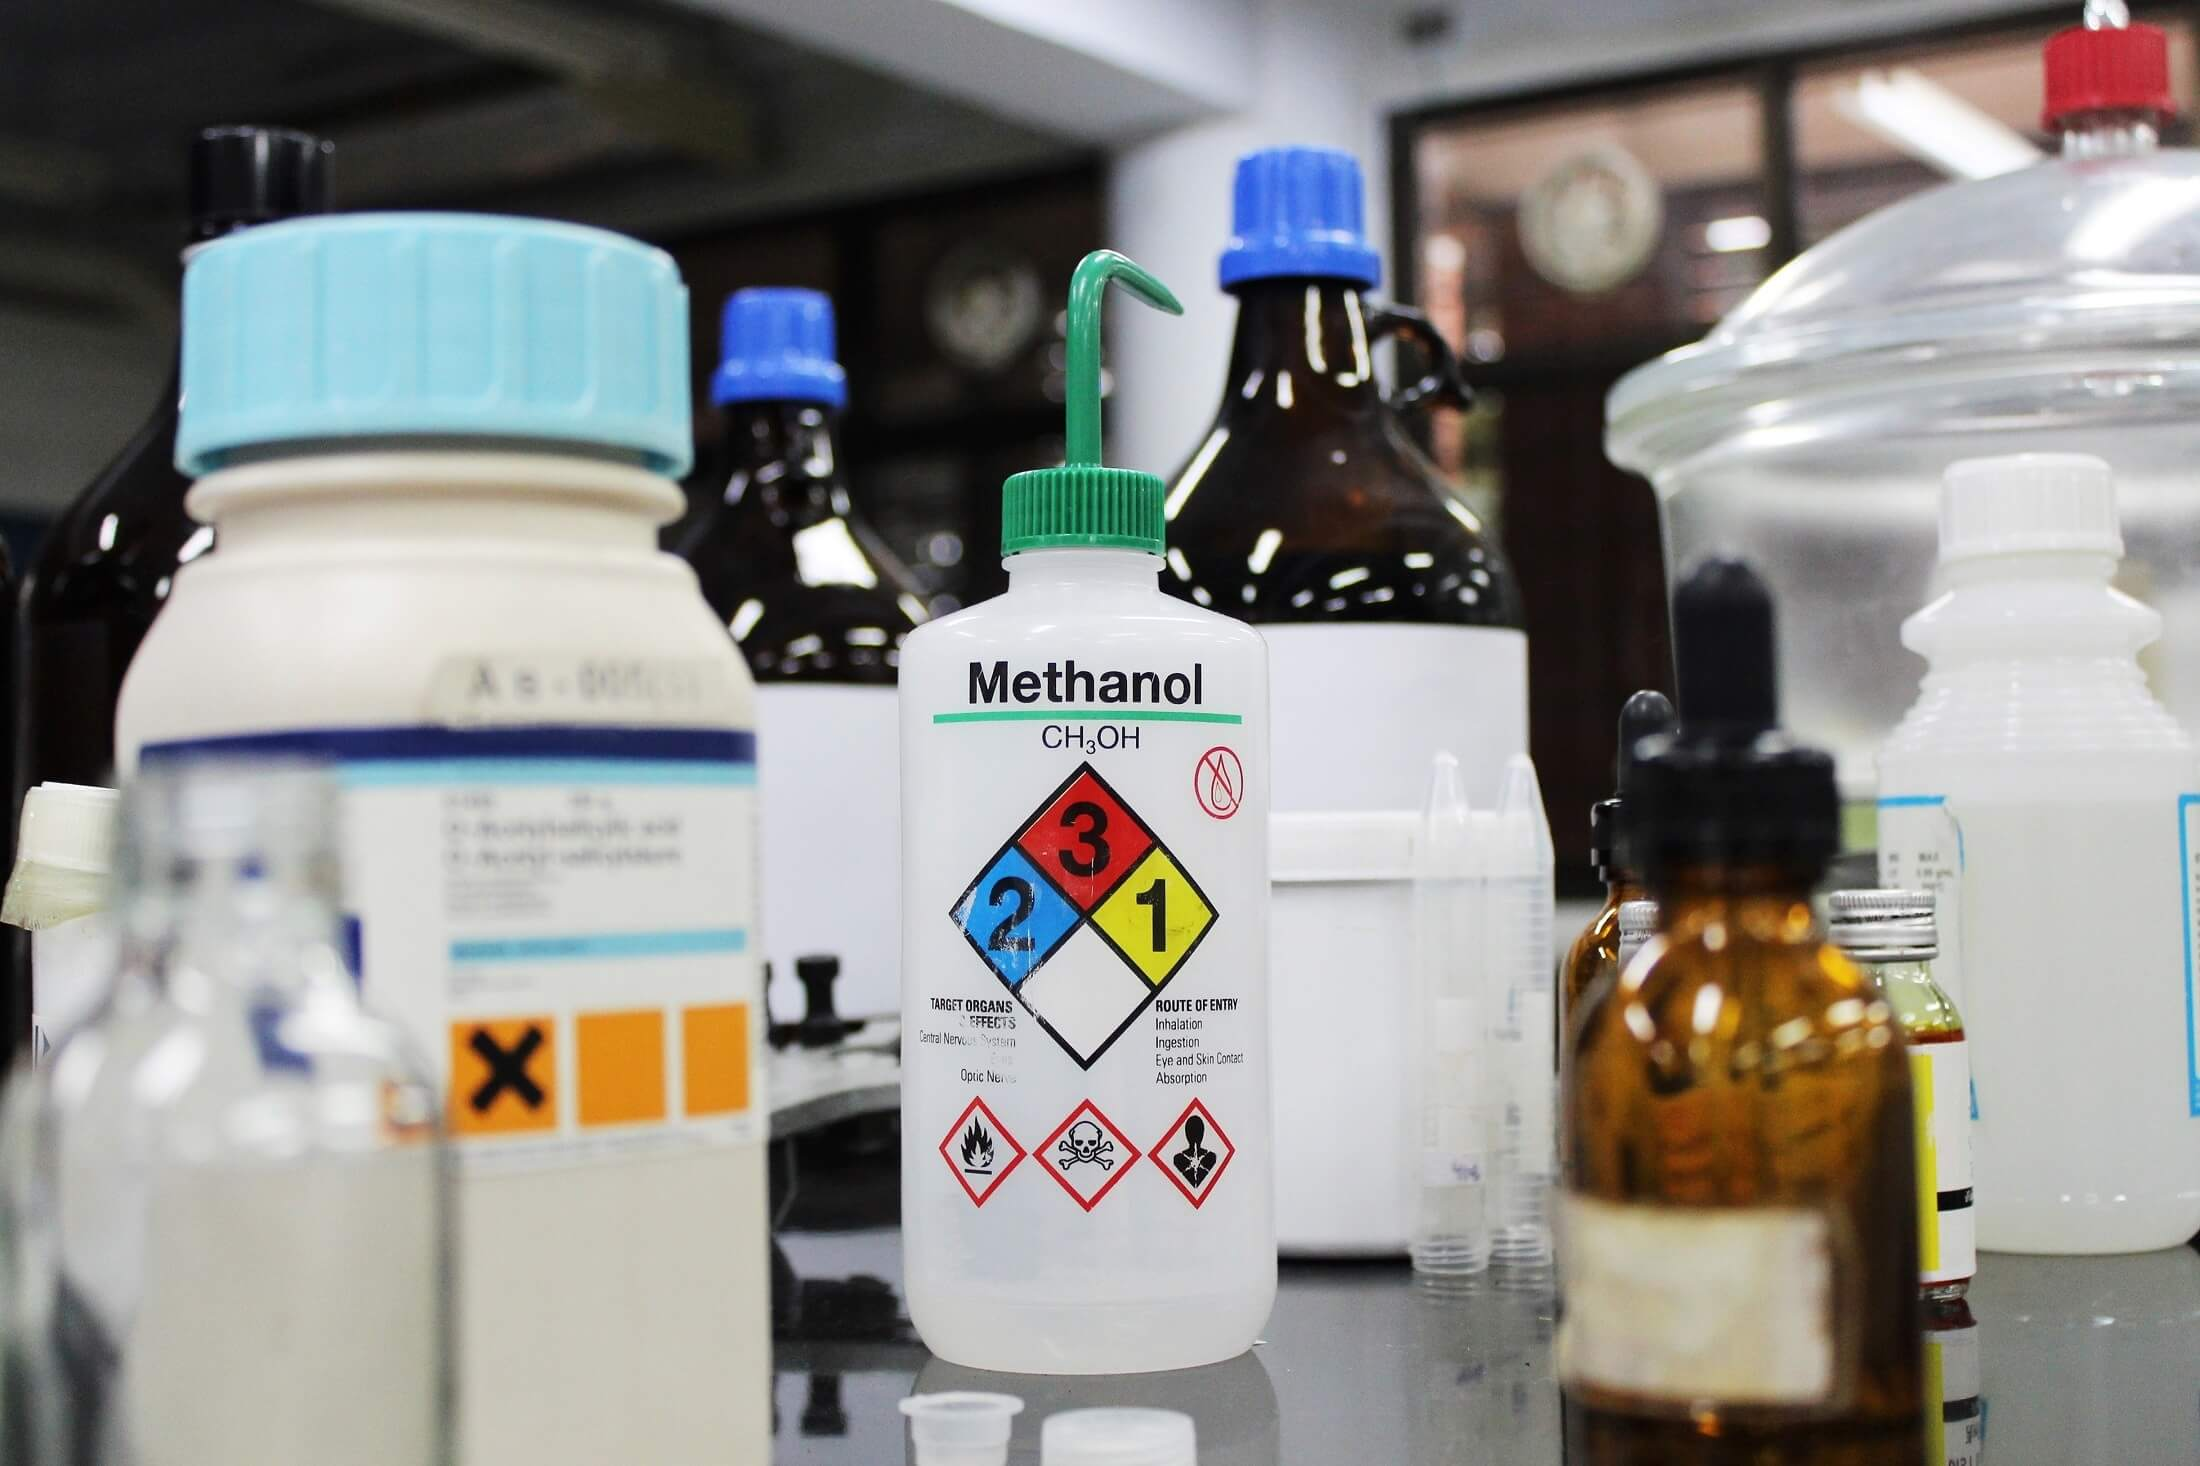 The Toxic Mix Of Segregation And >> How To Segregate Incompatible Hazardous Chemicals